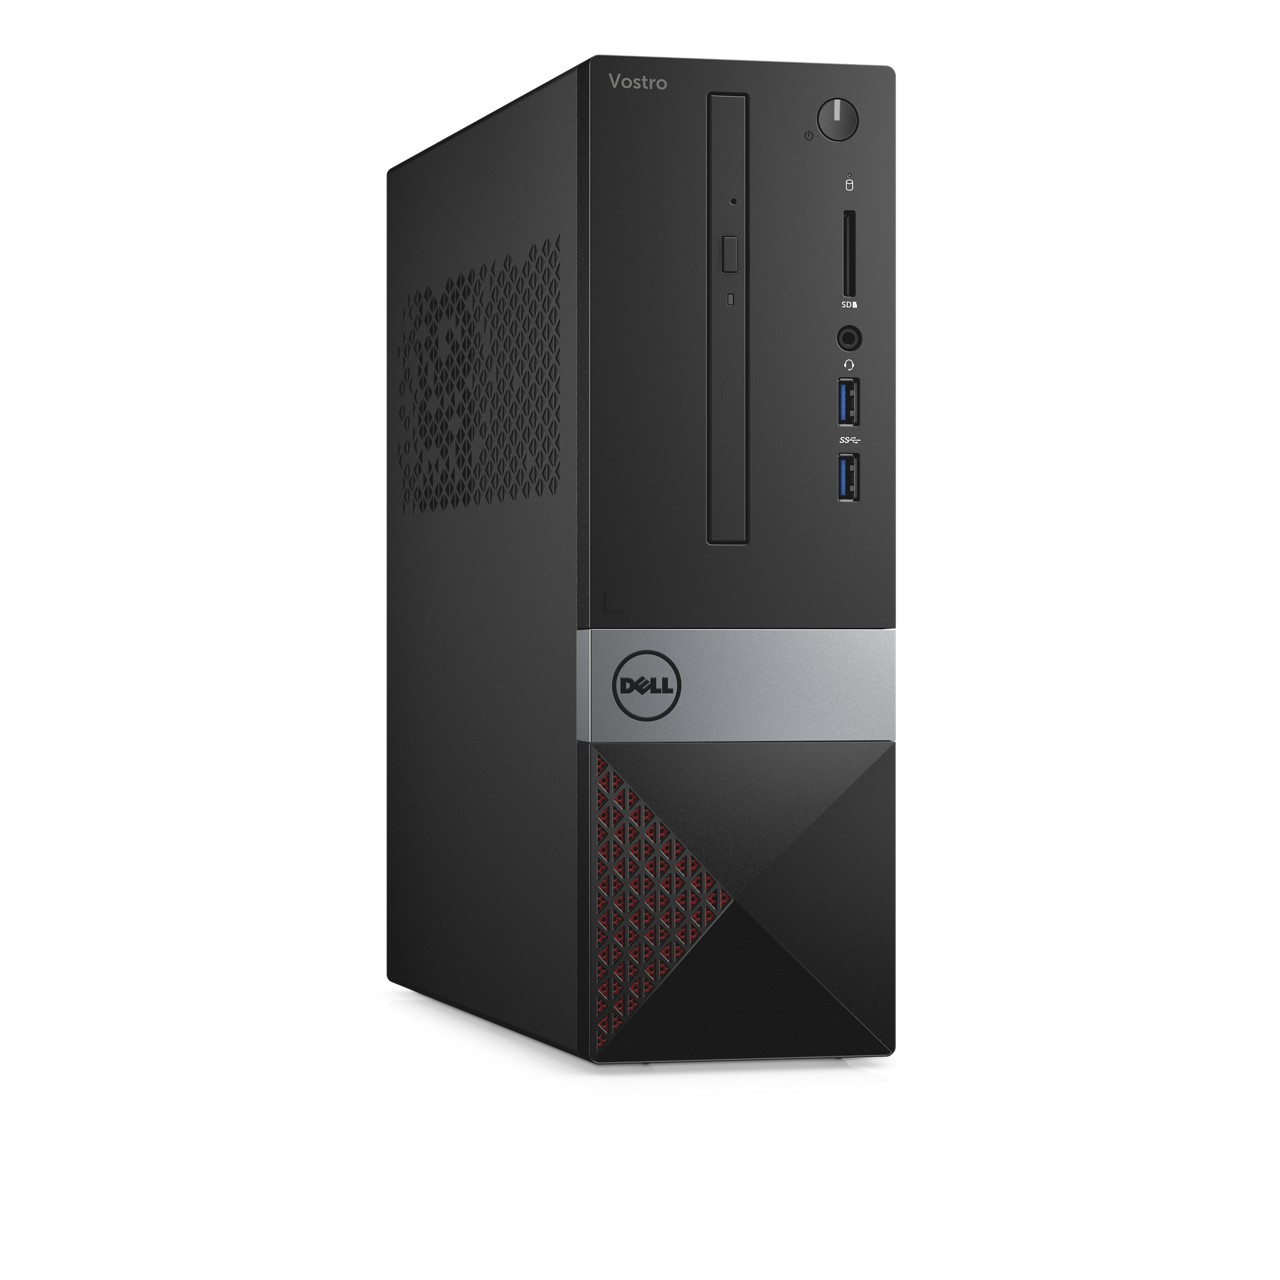 Dell PC Vostro 3268 SF i3-7100/4GB/500GB/VGA/HDMI/DVD-RW/WiFi+BT/W10P/